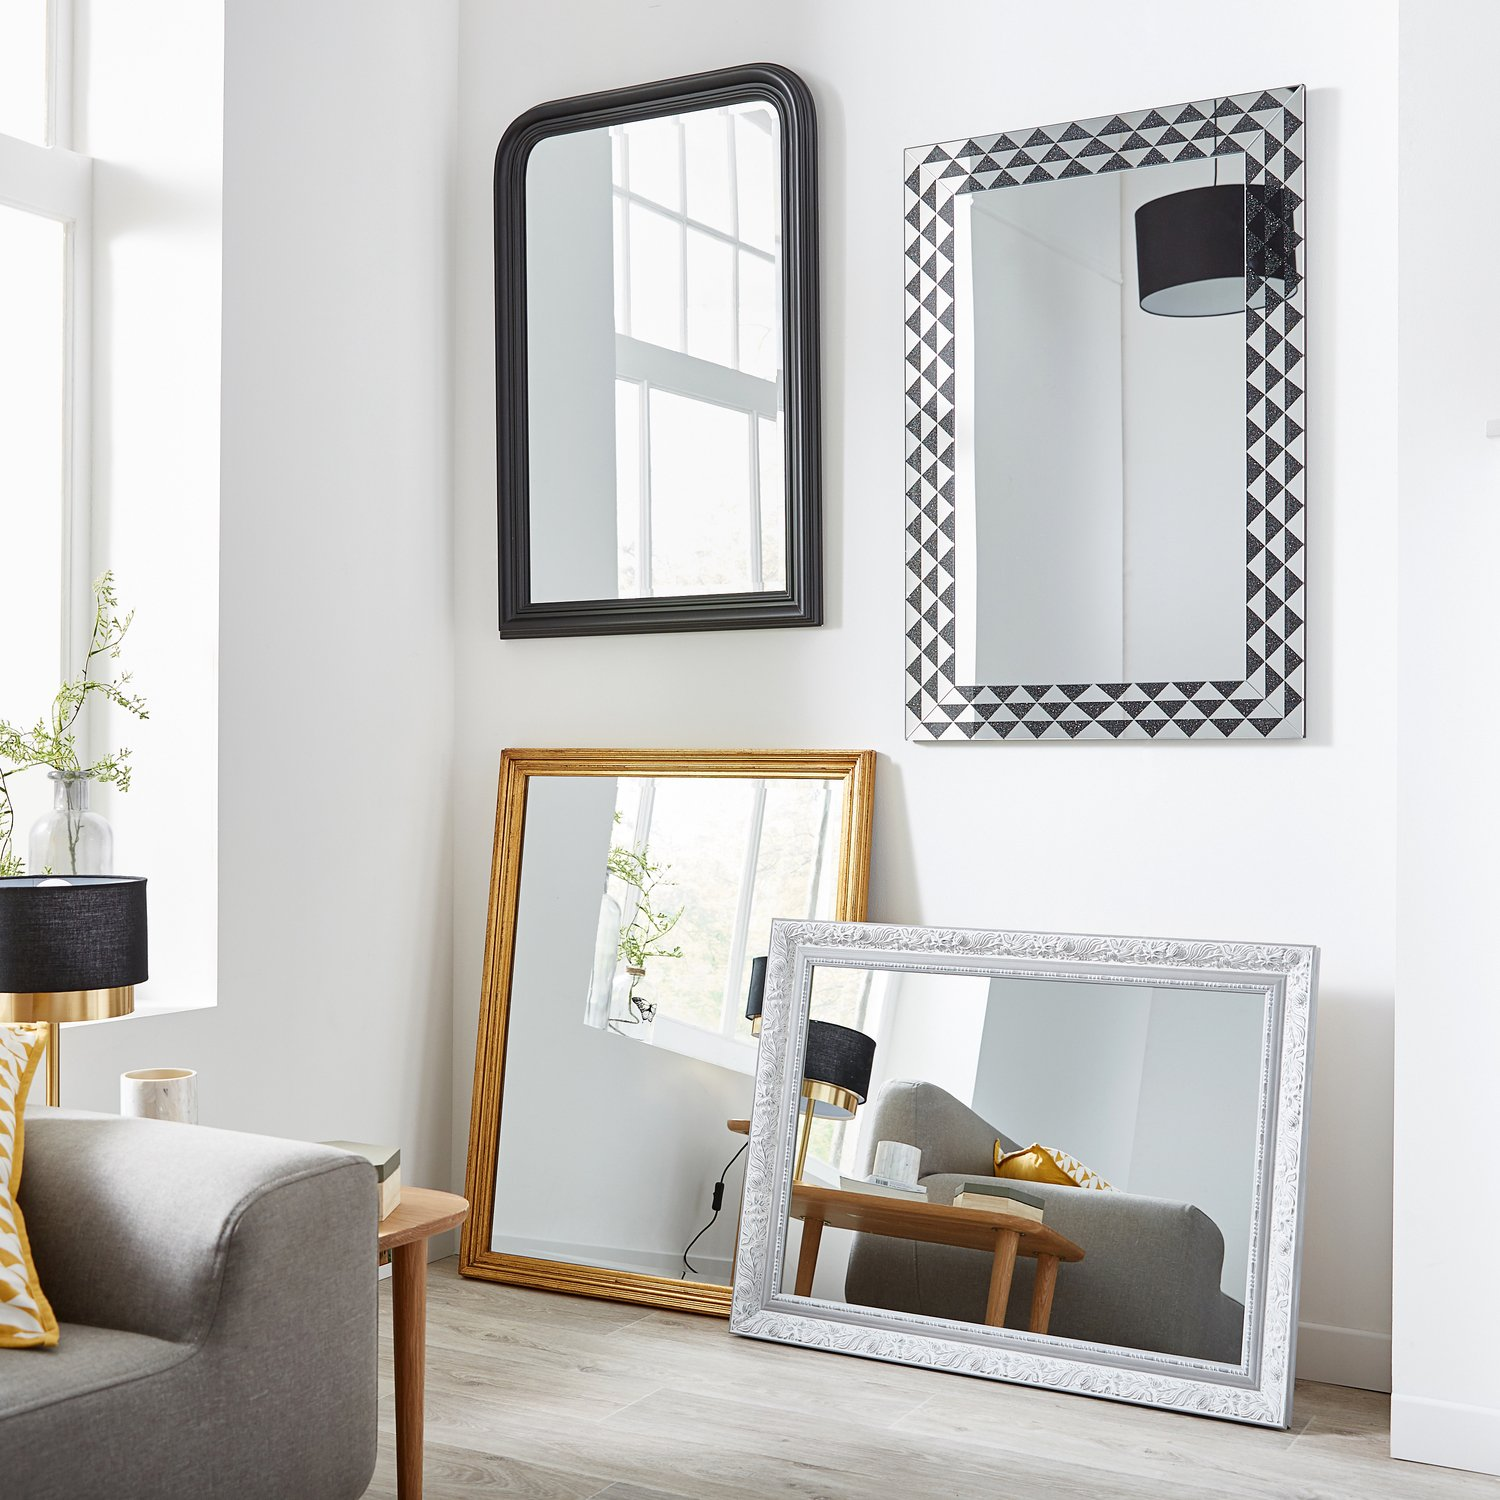 habillez son mur avec des miroirs divers pour cr er une sensation d 39 espace leroy merlin. Black Bedroom Furniture Sets. Home Design Ideas